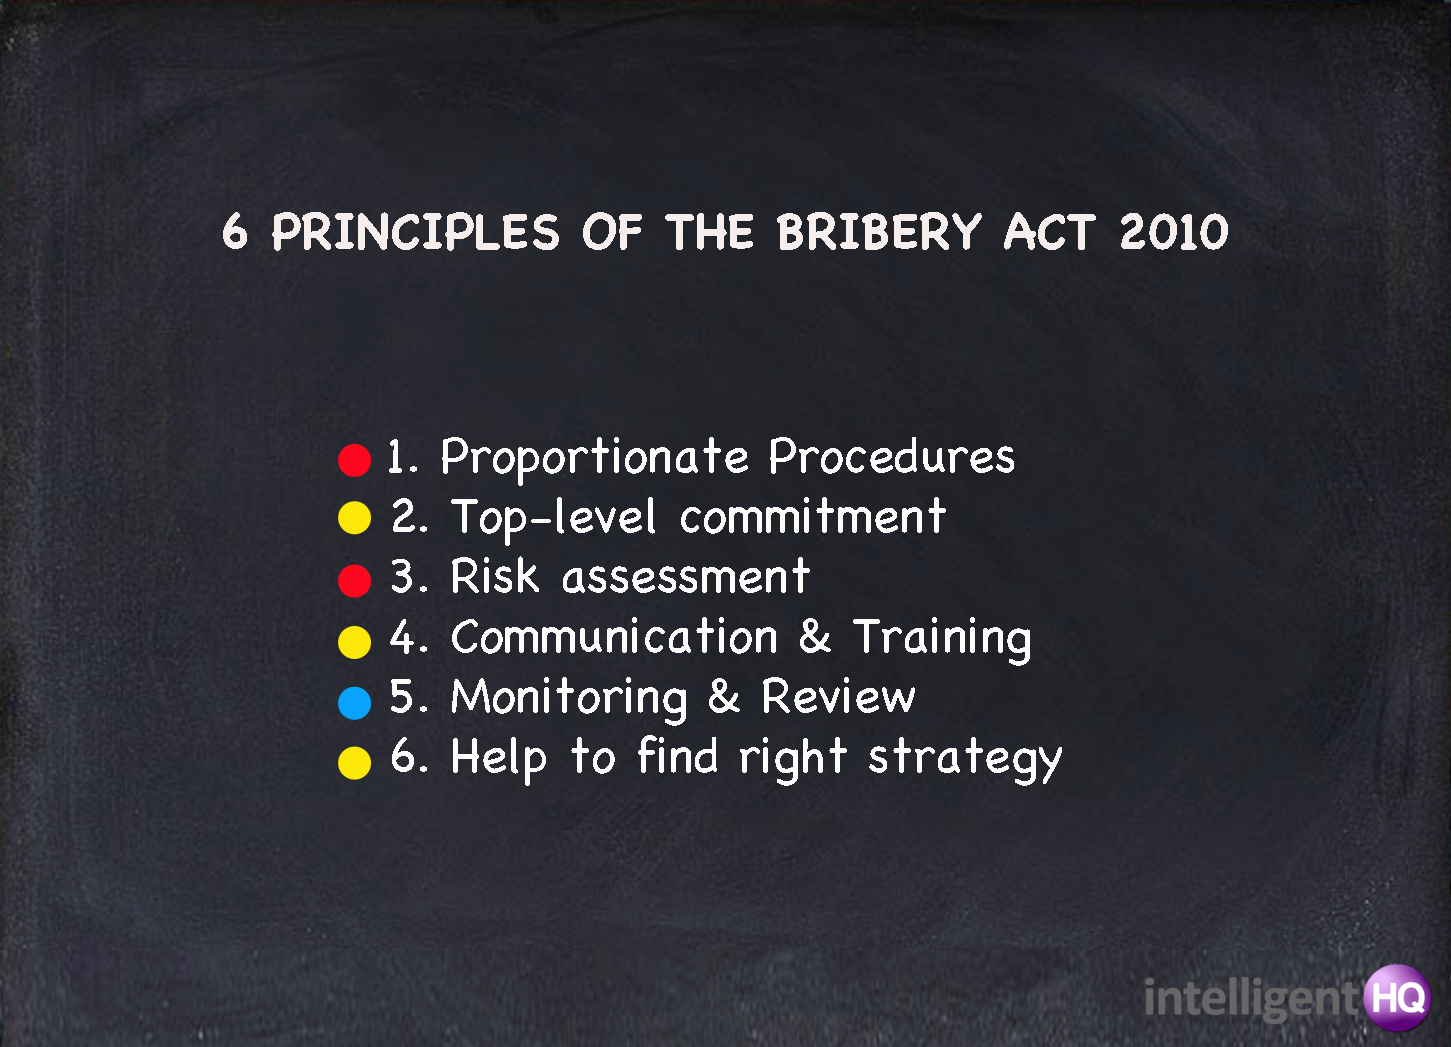 6 Principles of the bribery act 2010 Intelligenthq